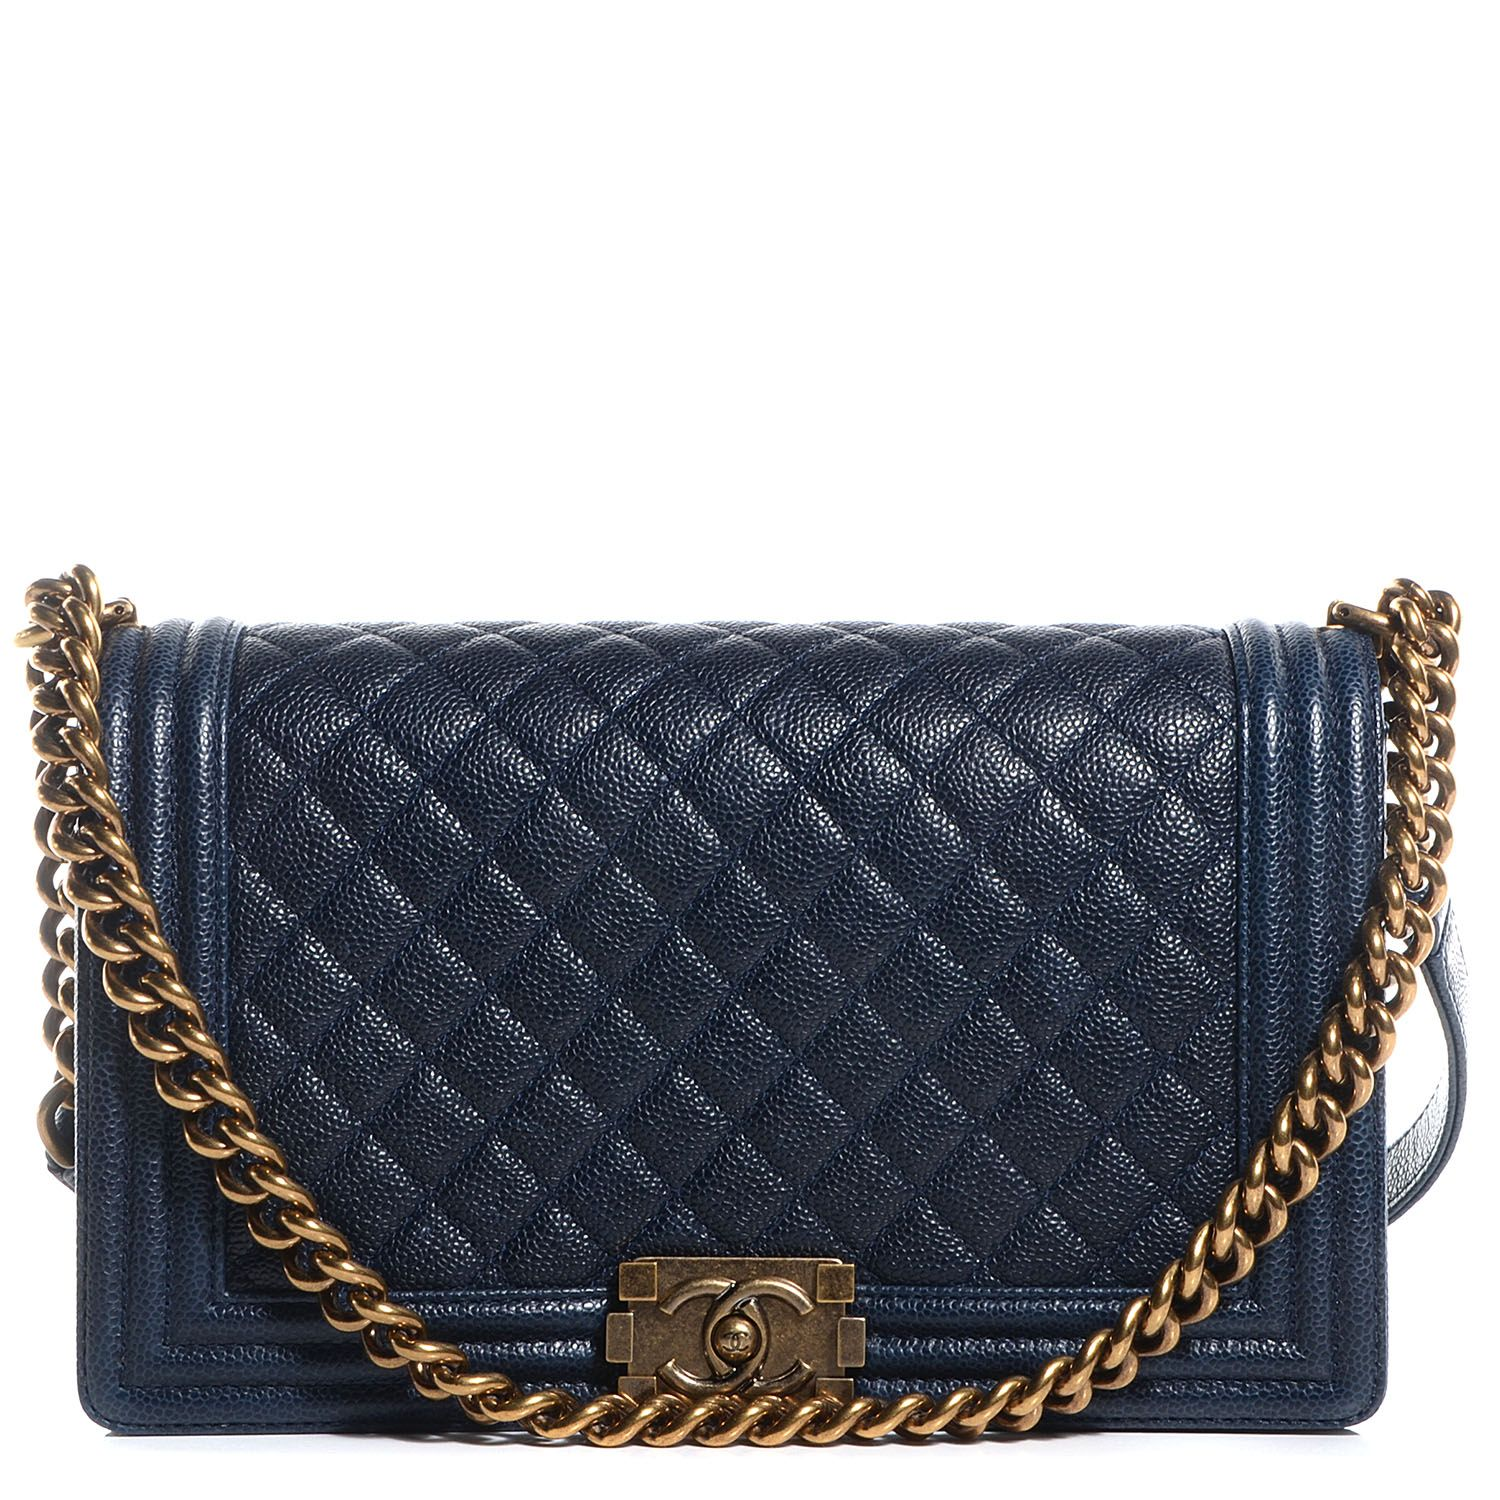 366c2d85742d CHANEL Caviar Quilted New Medium Boy Flap Dark Navy Blue